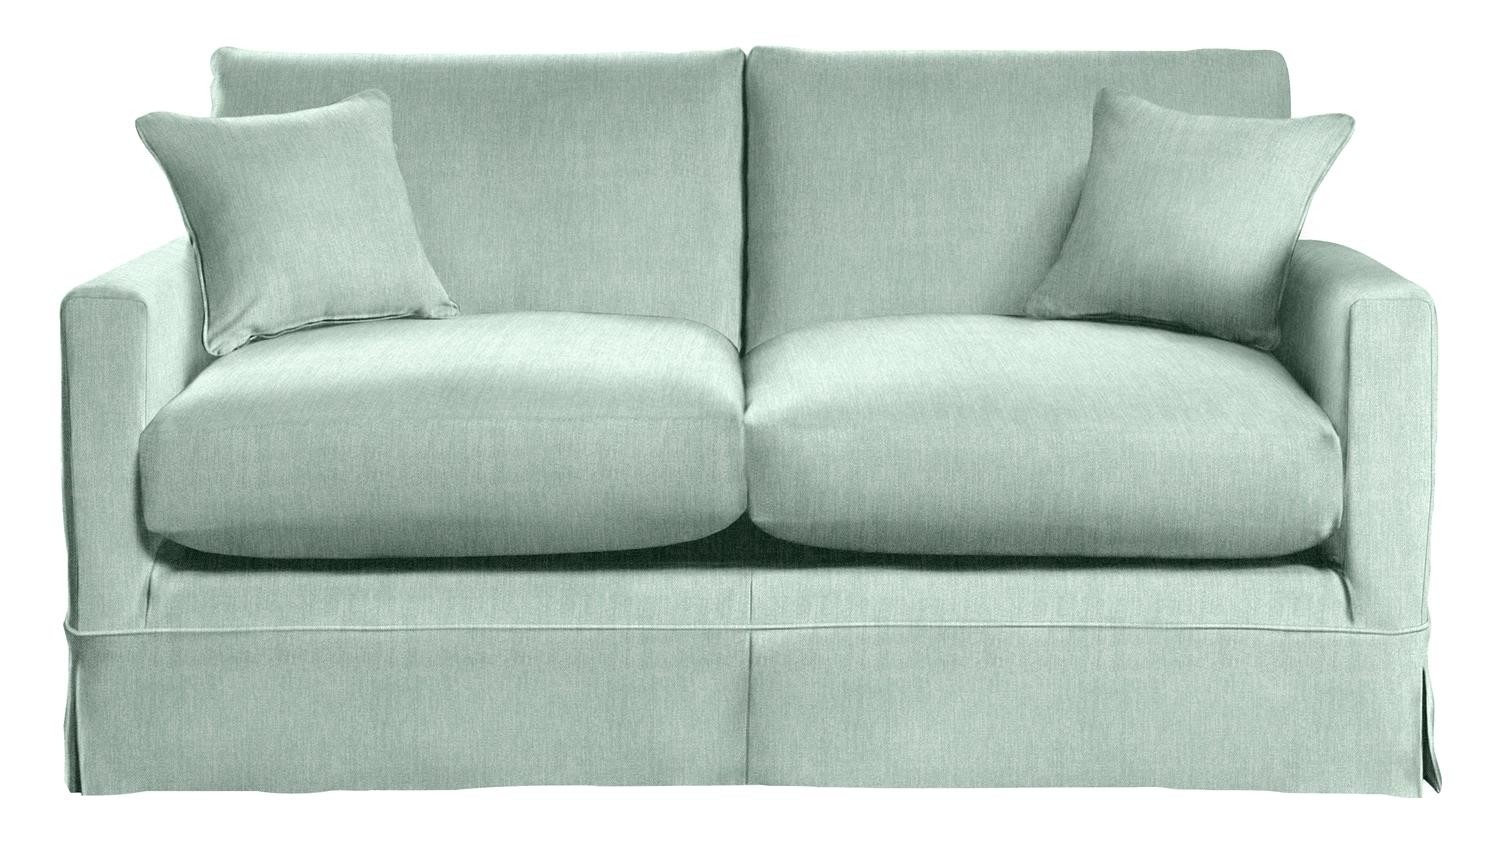 The Gifford 3 Seater Sofa Bed